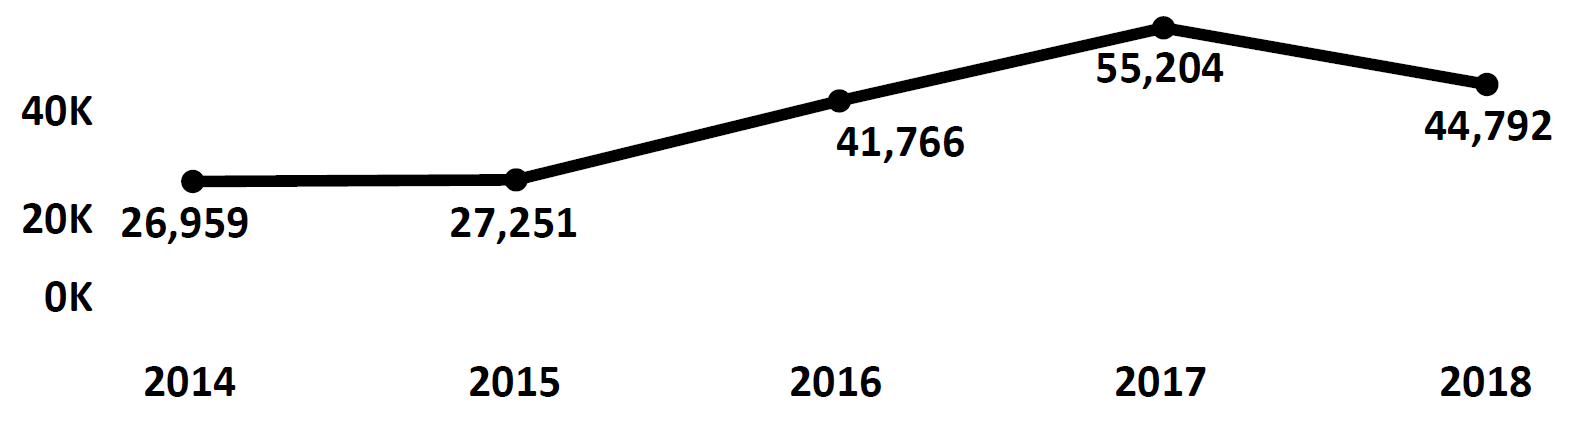 Graph of Do Not Call complaints recorded in Kansas from fiscal year 2014 to fiscal year 2018. In 2014 there were 26,959 complaints filed, which increased each year to peak at 55,204 in 2017. In 2018 there were 44,792 complaints filed, fewer than 2017.